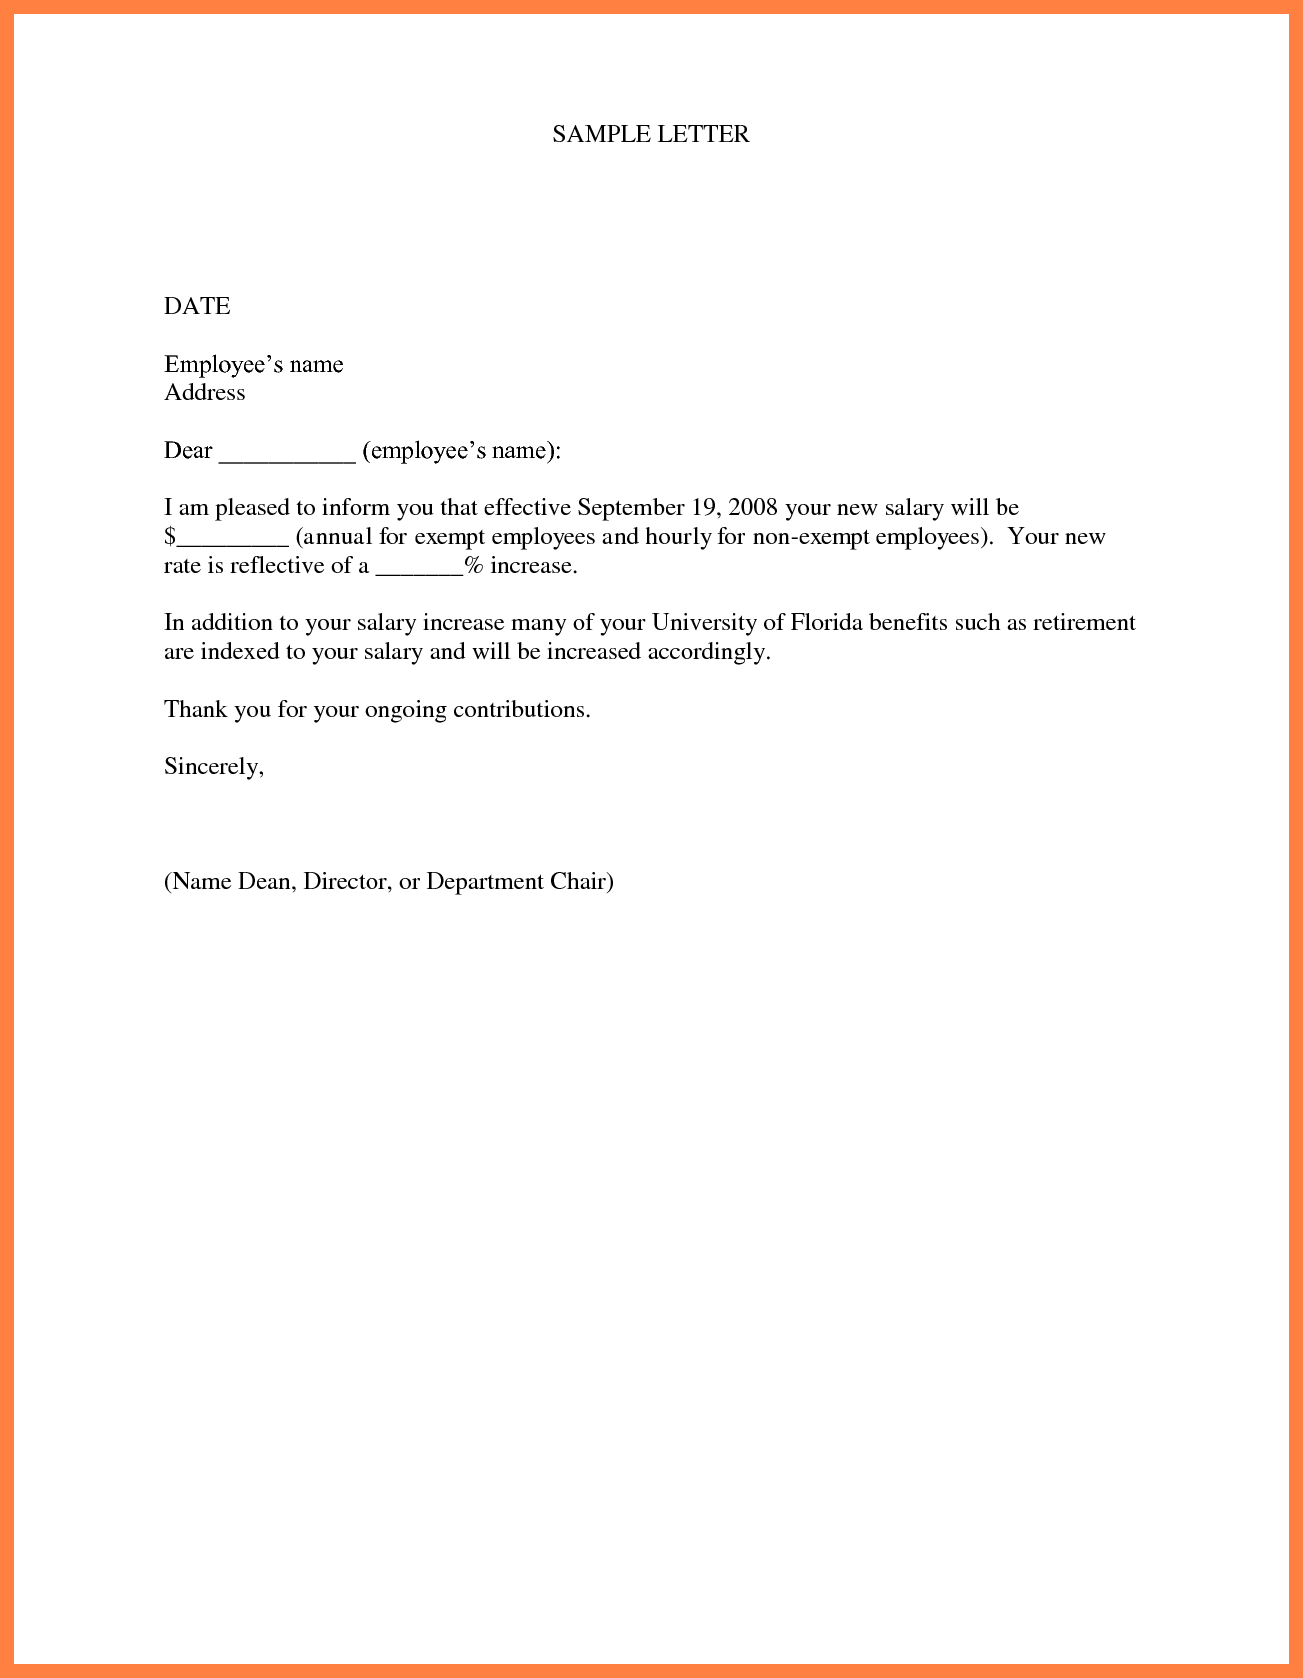 Image result for yearly salary increment letter format in word image result for yearly salary increment letter format in word thecheapjerseys Choice Image